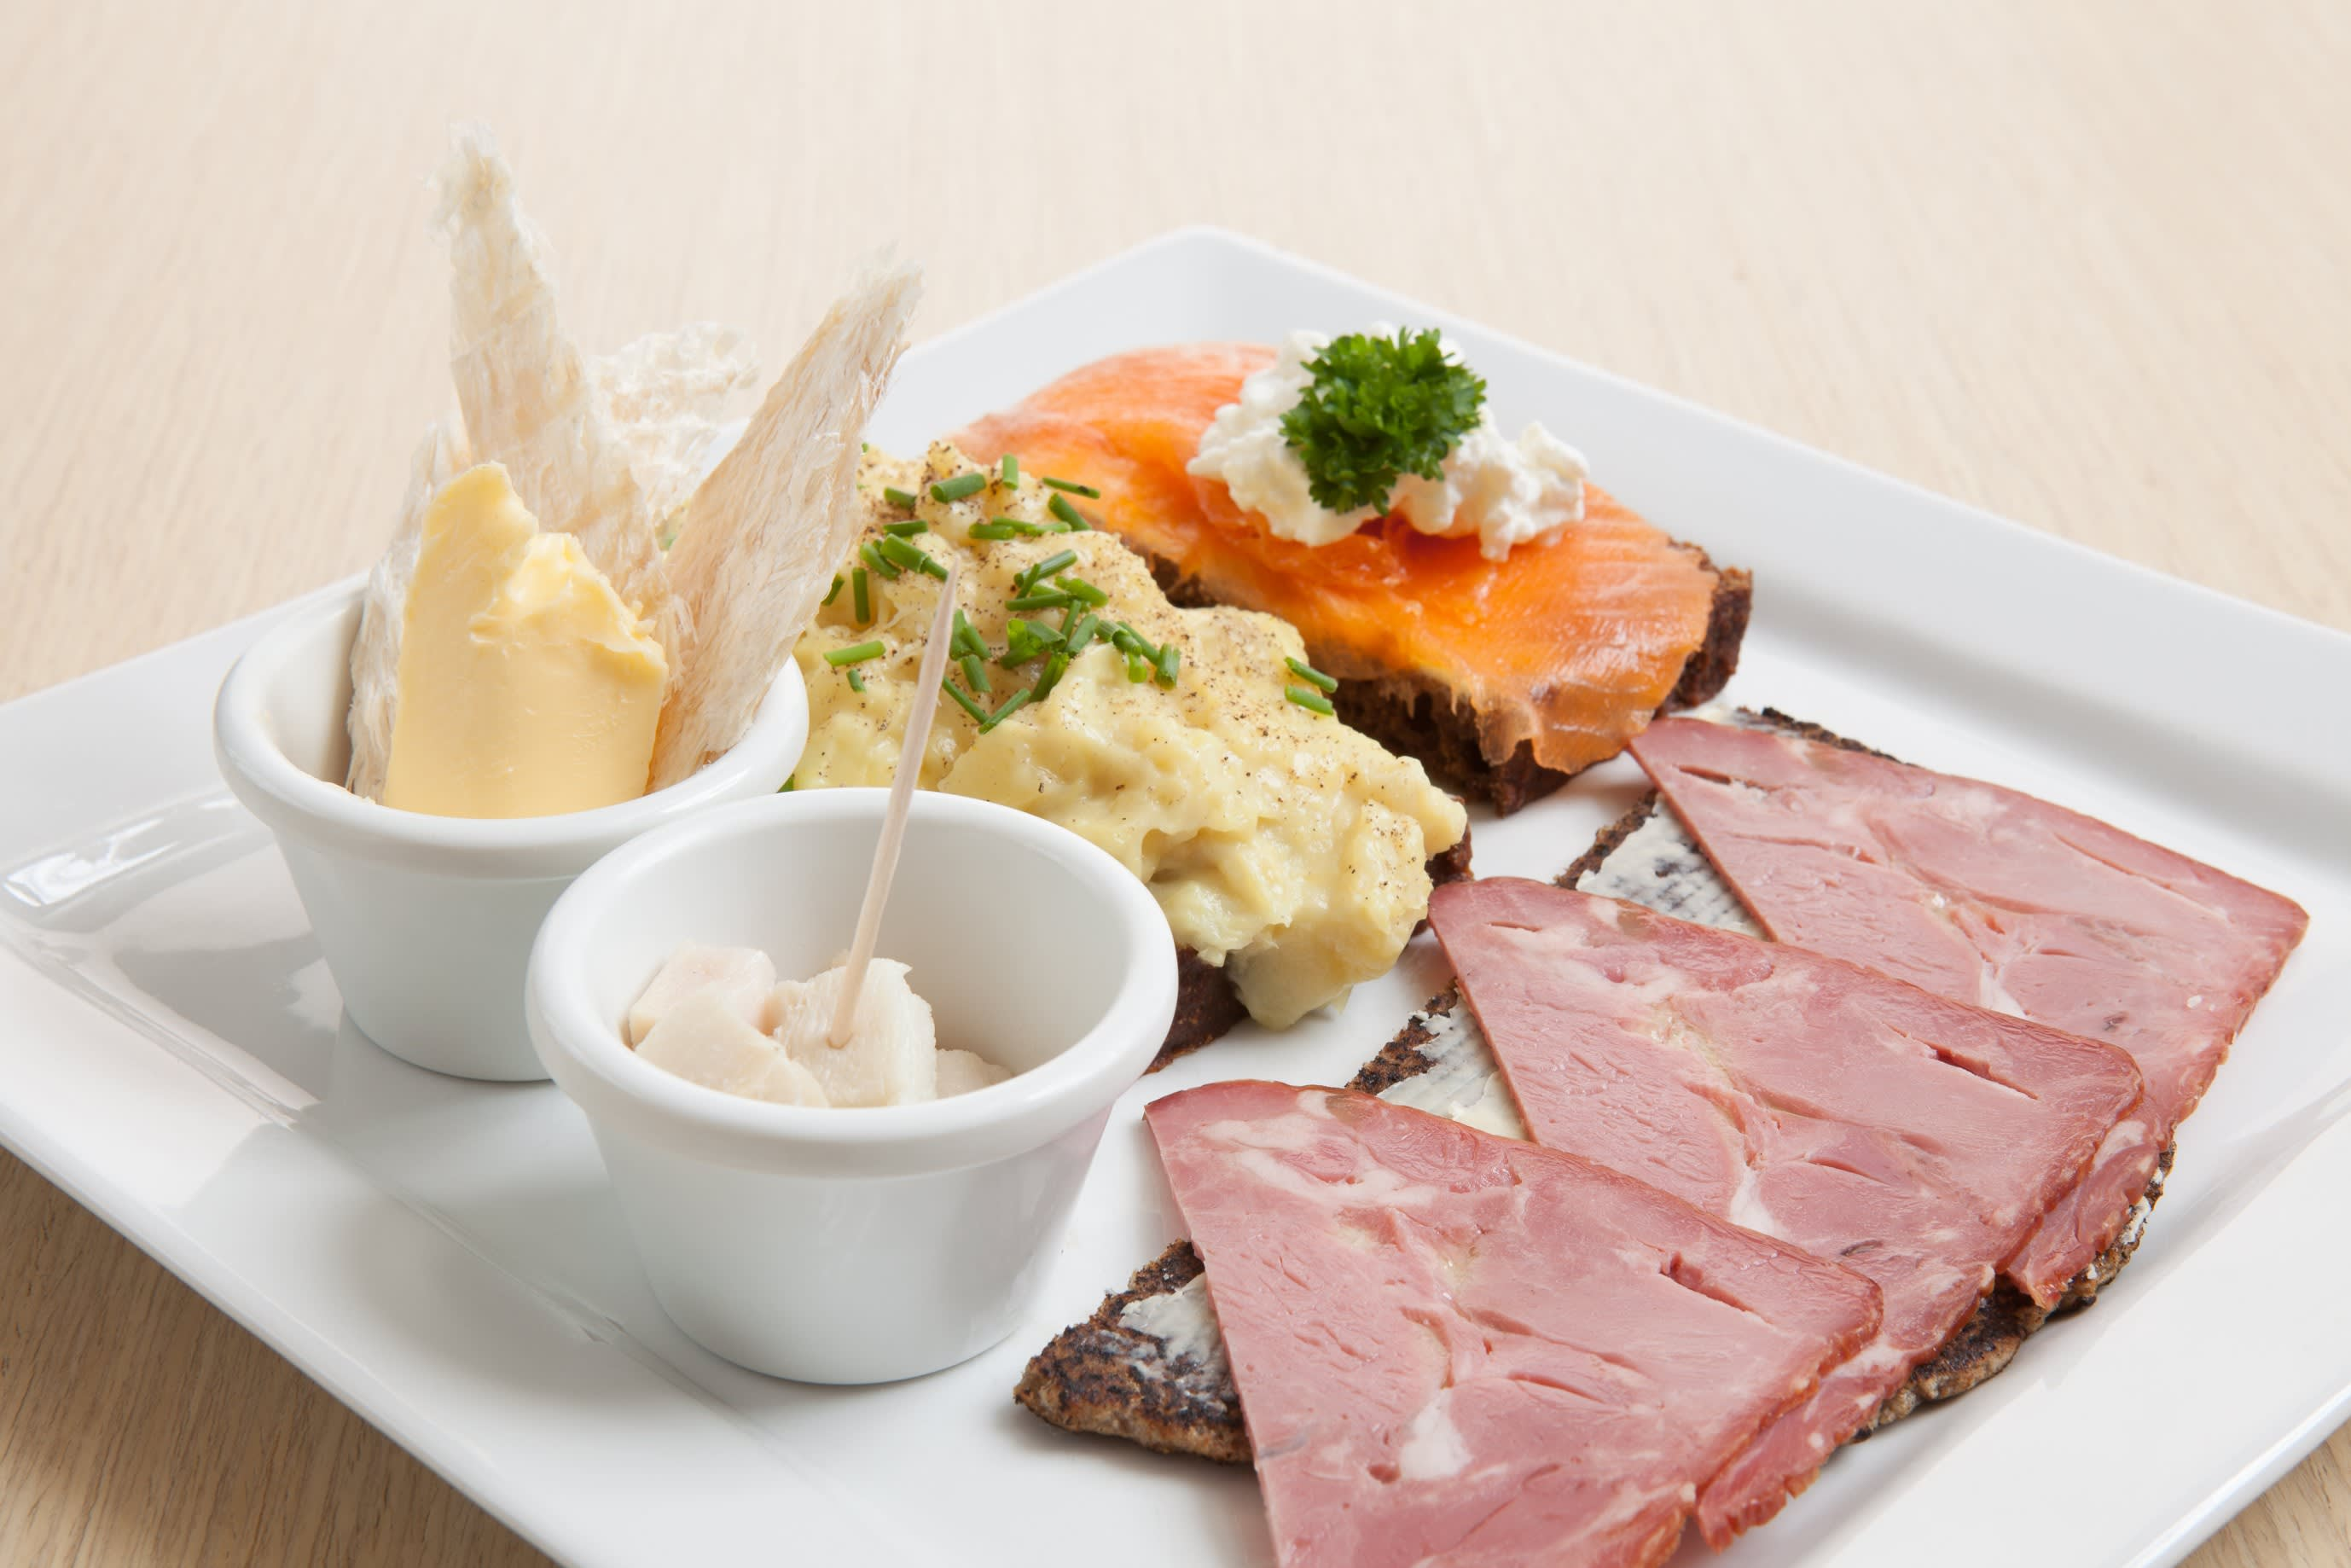 a plate for Thorablot celebrations in Iceland - displaying various fish and meats on Icelandic breads data-verified=